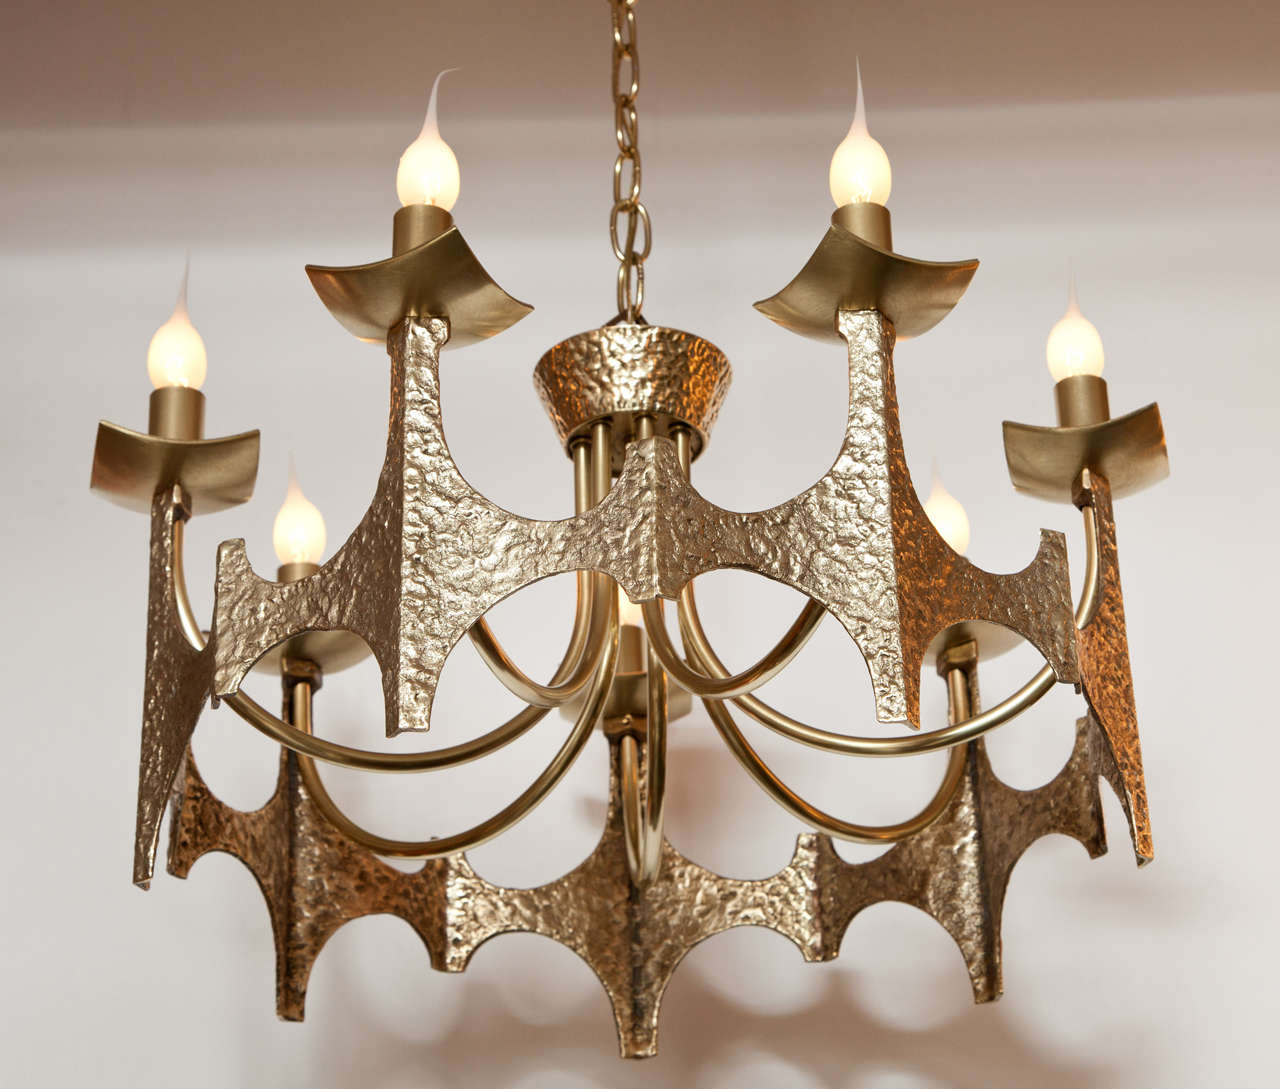 Decorative Brutalist brass chandelier, circa 1950.